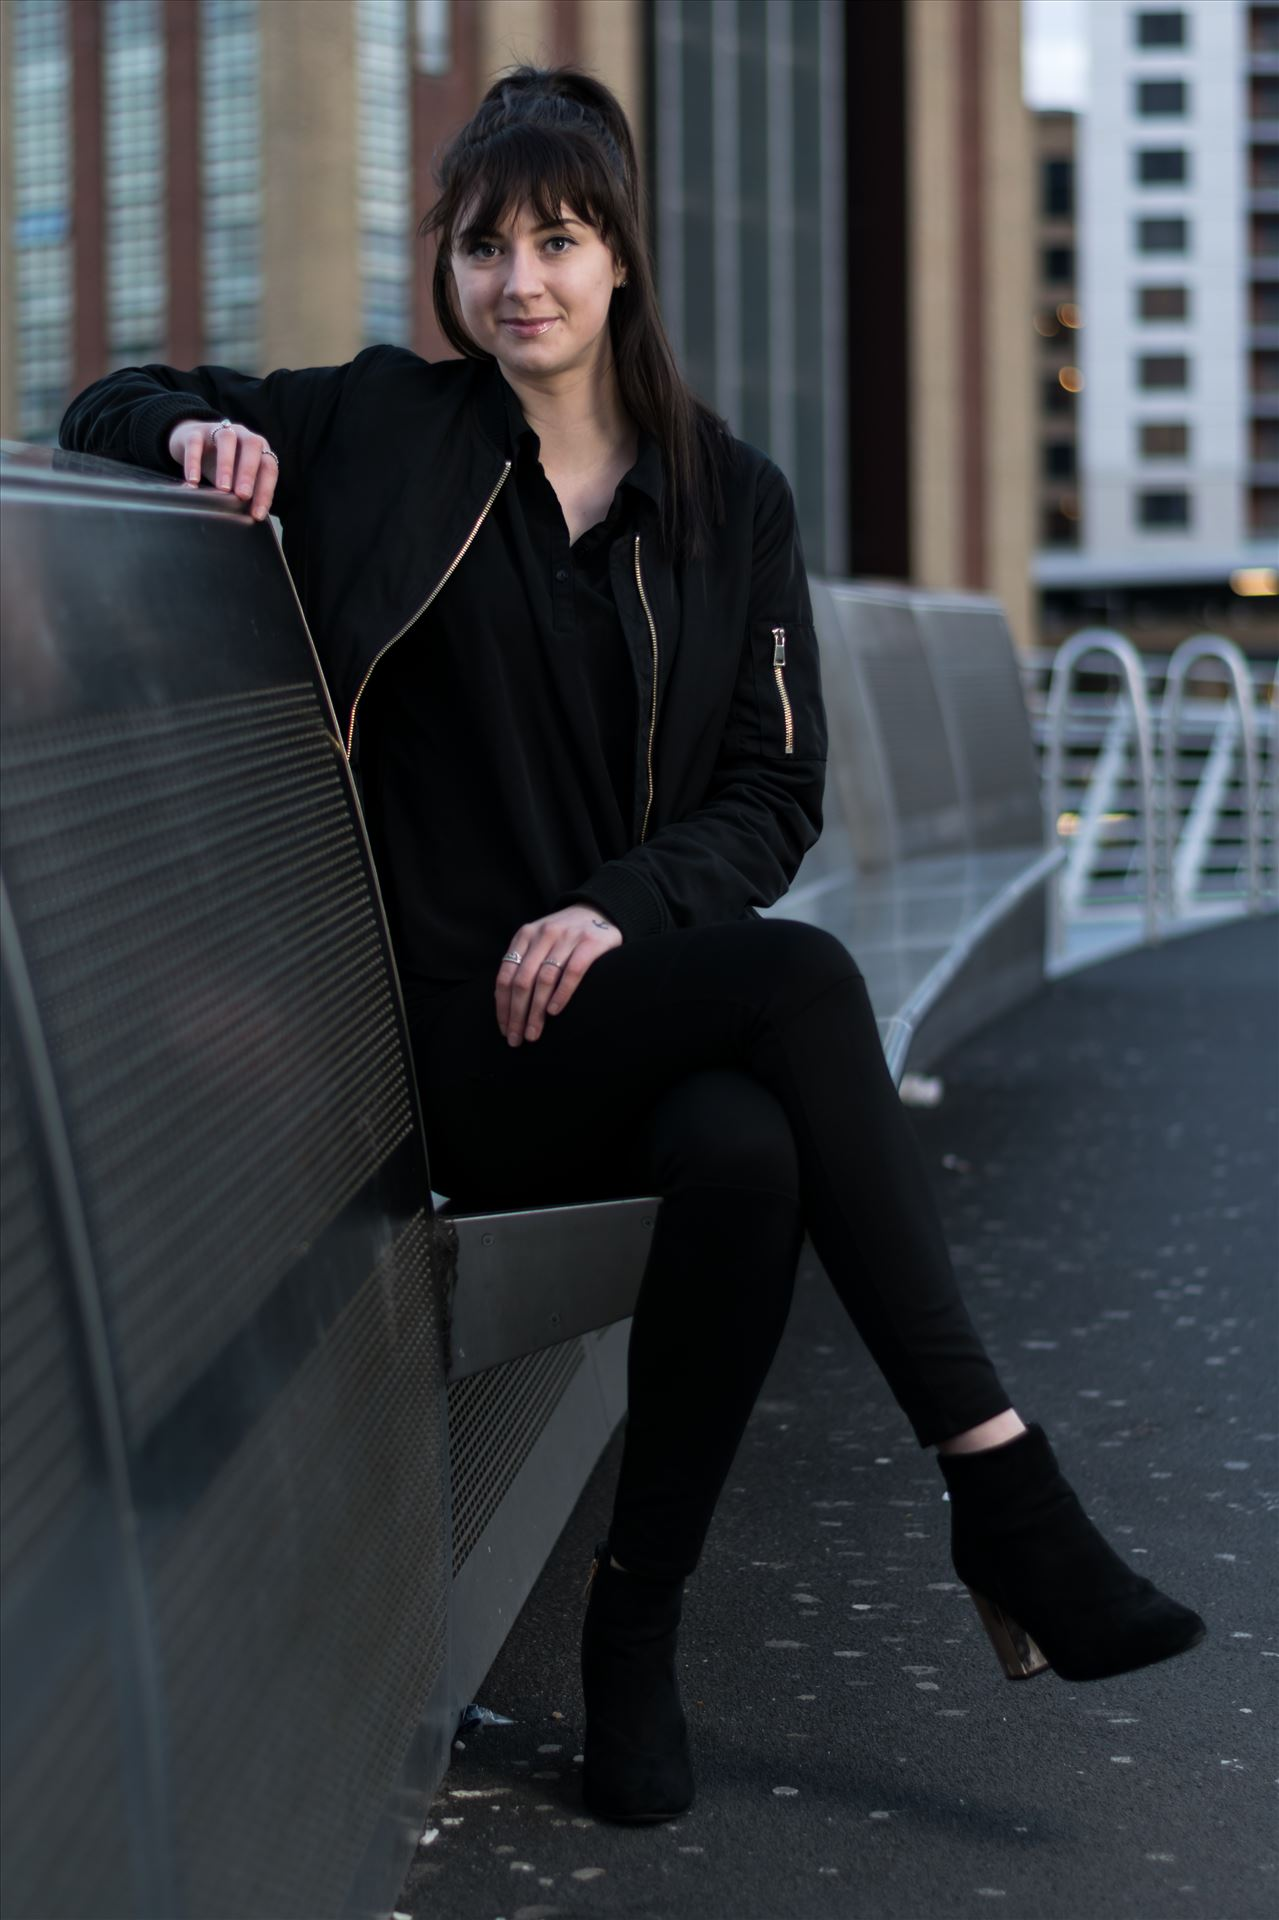 Rachel Louise Adie - Rachel Louise Adie modelling shoot at Newcastle Quayside by AJ Stoves Photography